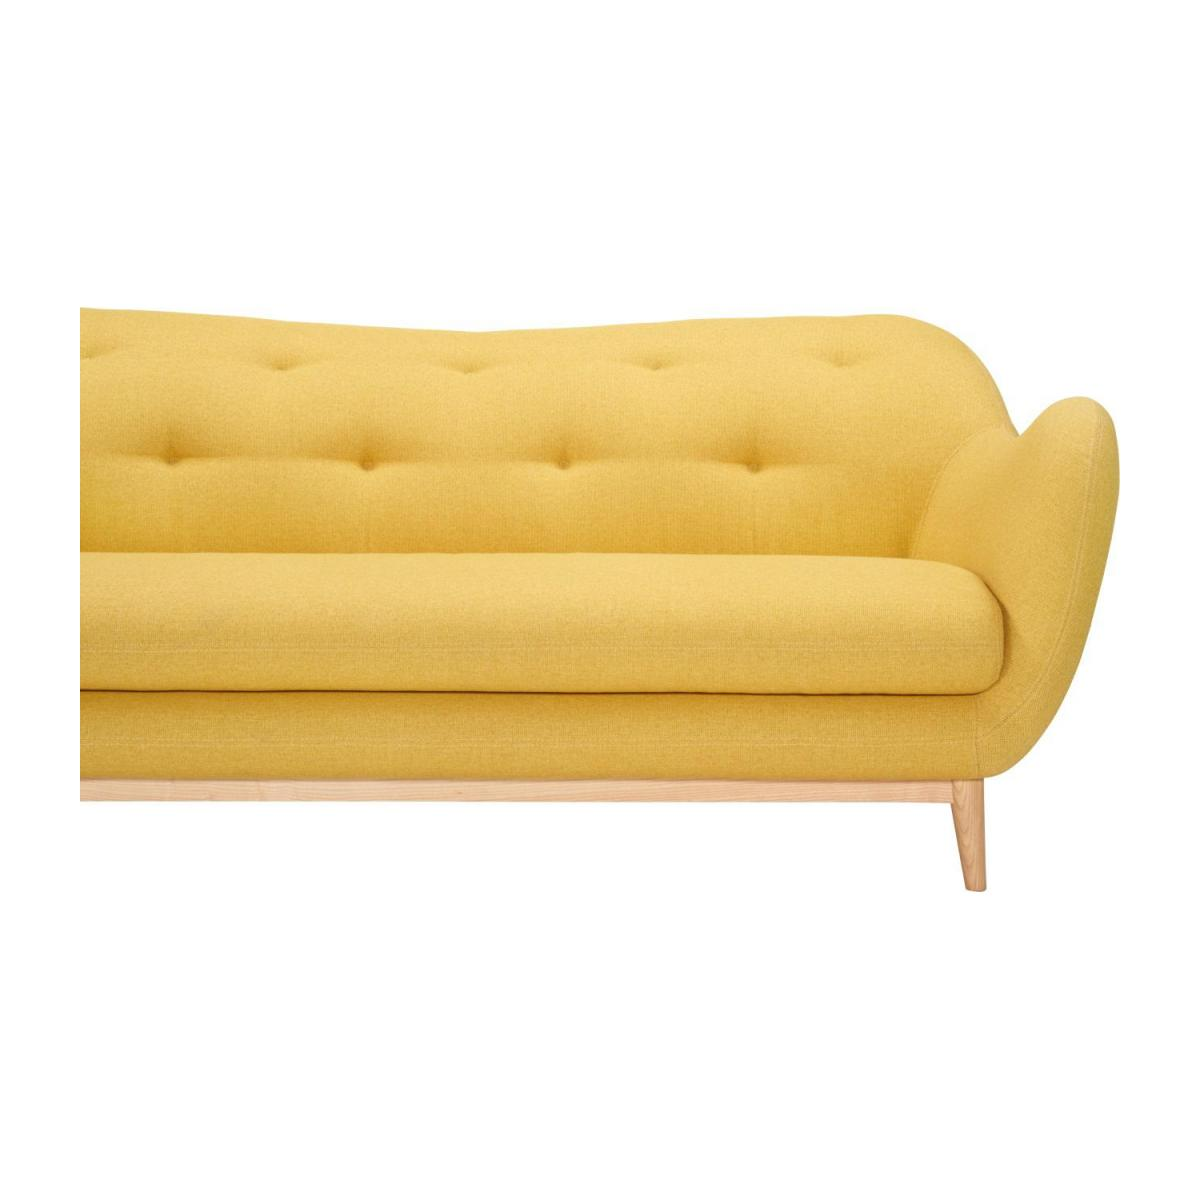 3-seat sofa made of fabric, yellow n°8